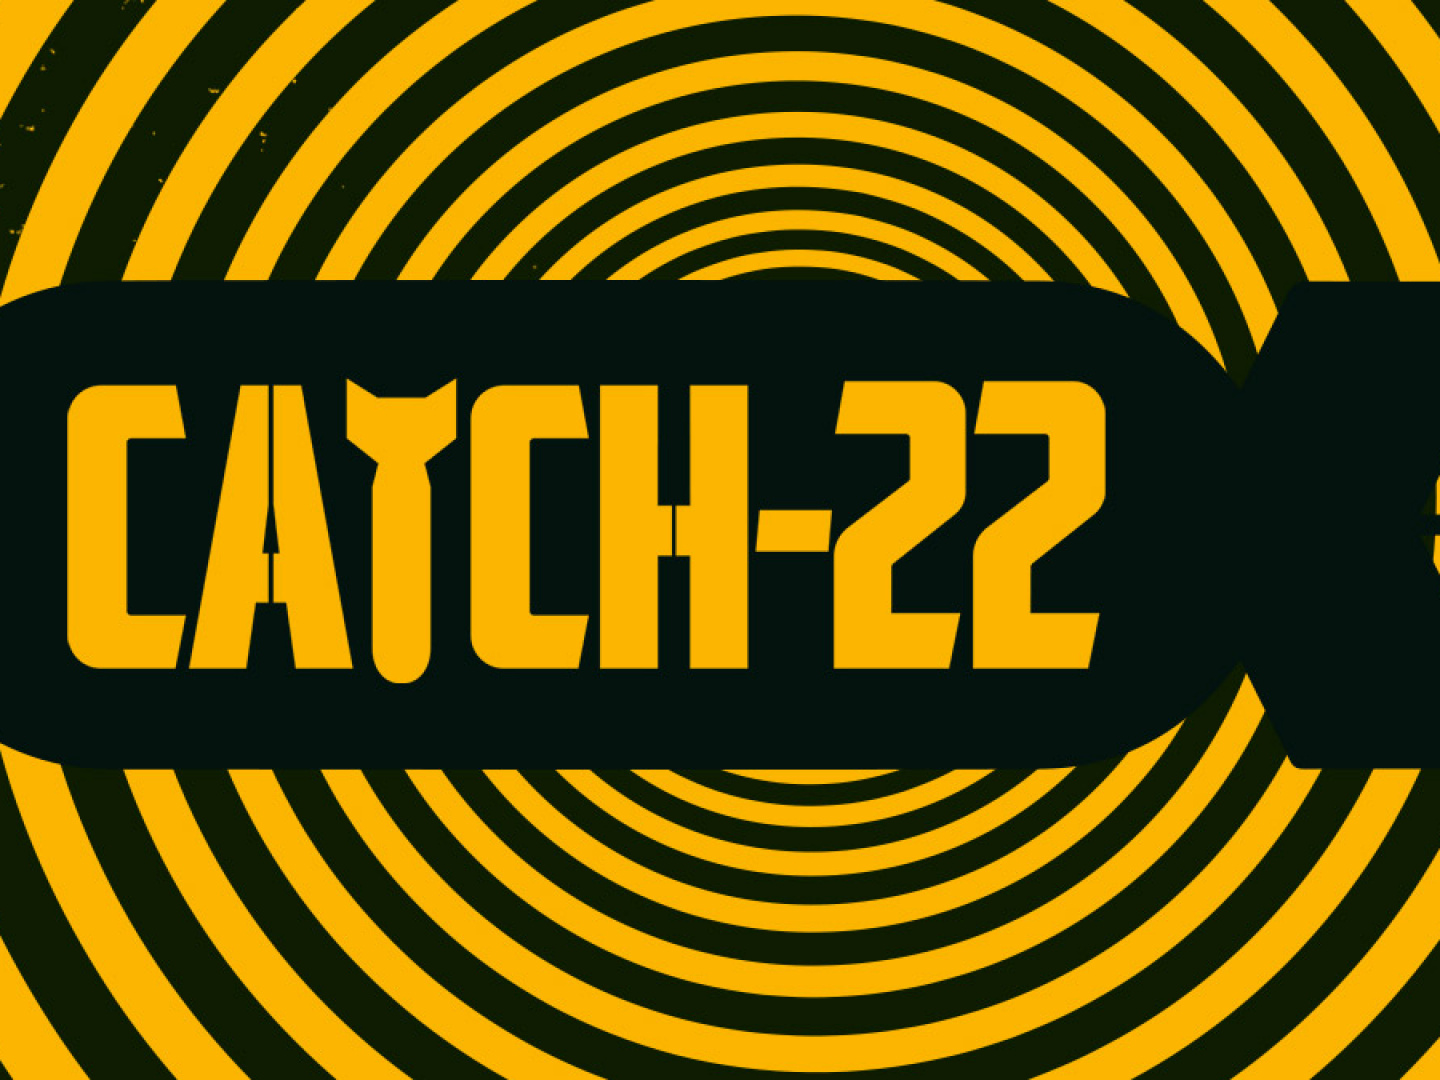 Catch 22 - Fighting a Losing Battle Thumbnail